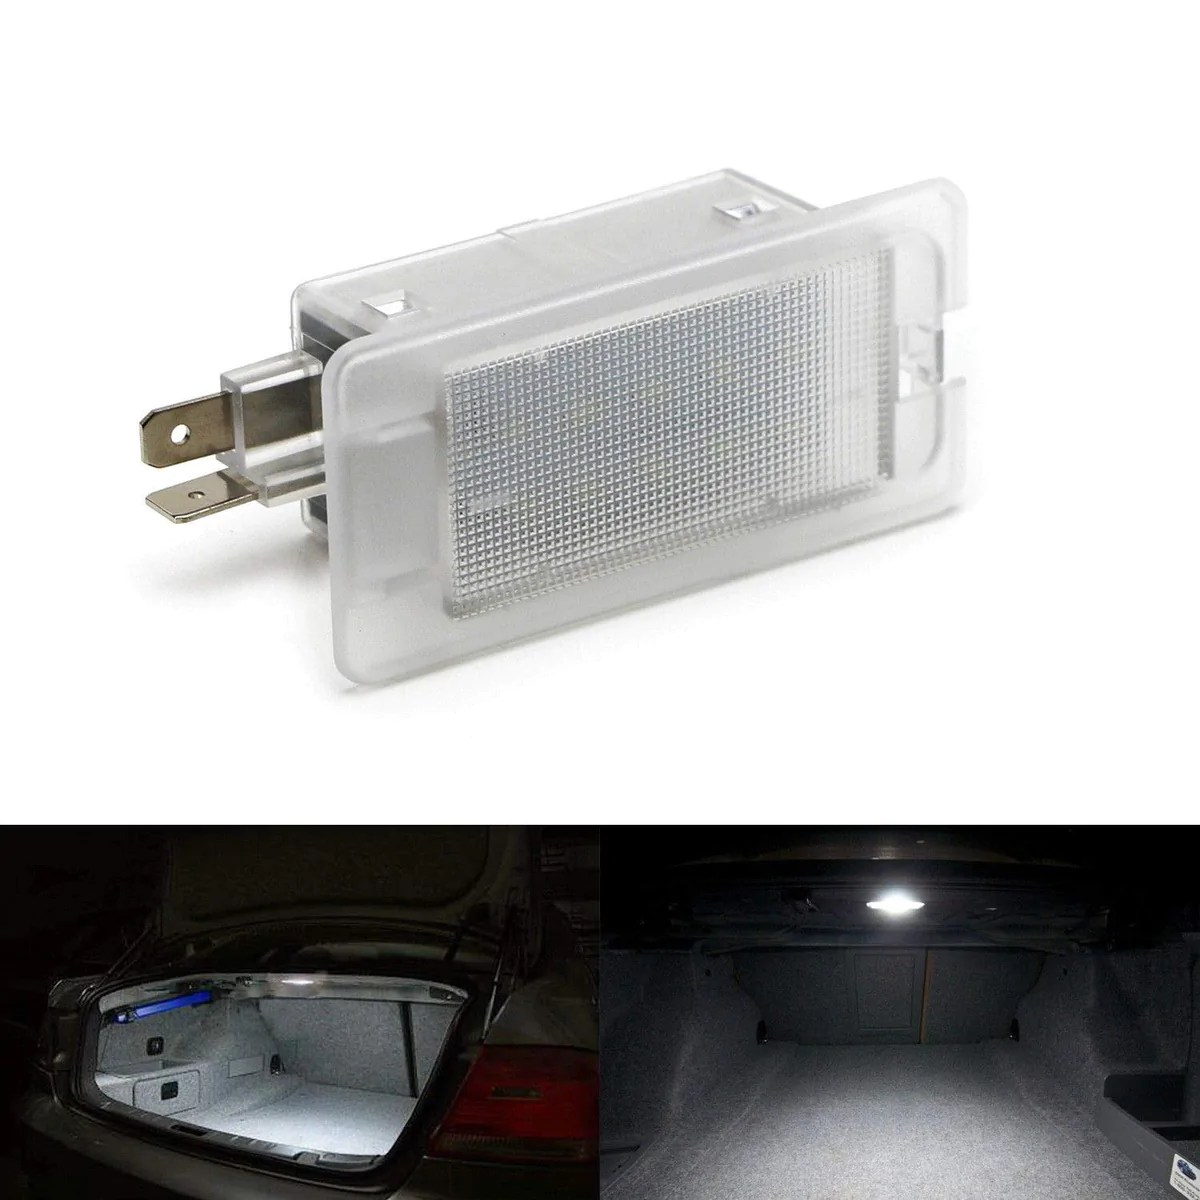 small resolution of xenon white led trunk glove box light for hyundai accent elantra genesis coupe sonata kia optima forte rio k900 etc great as oem replacement powered by